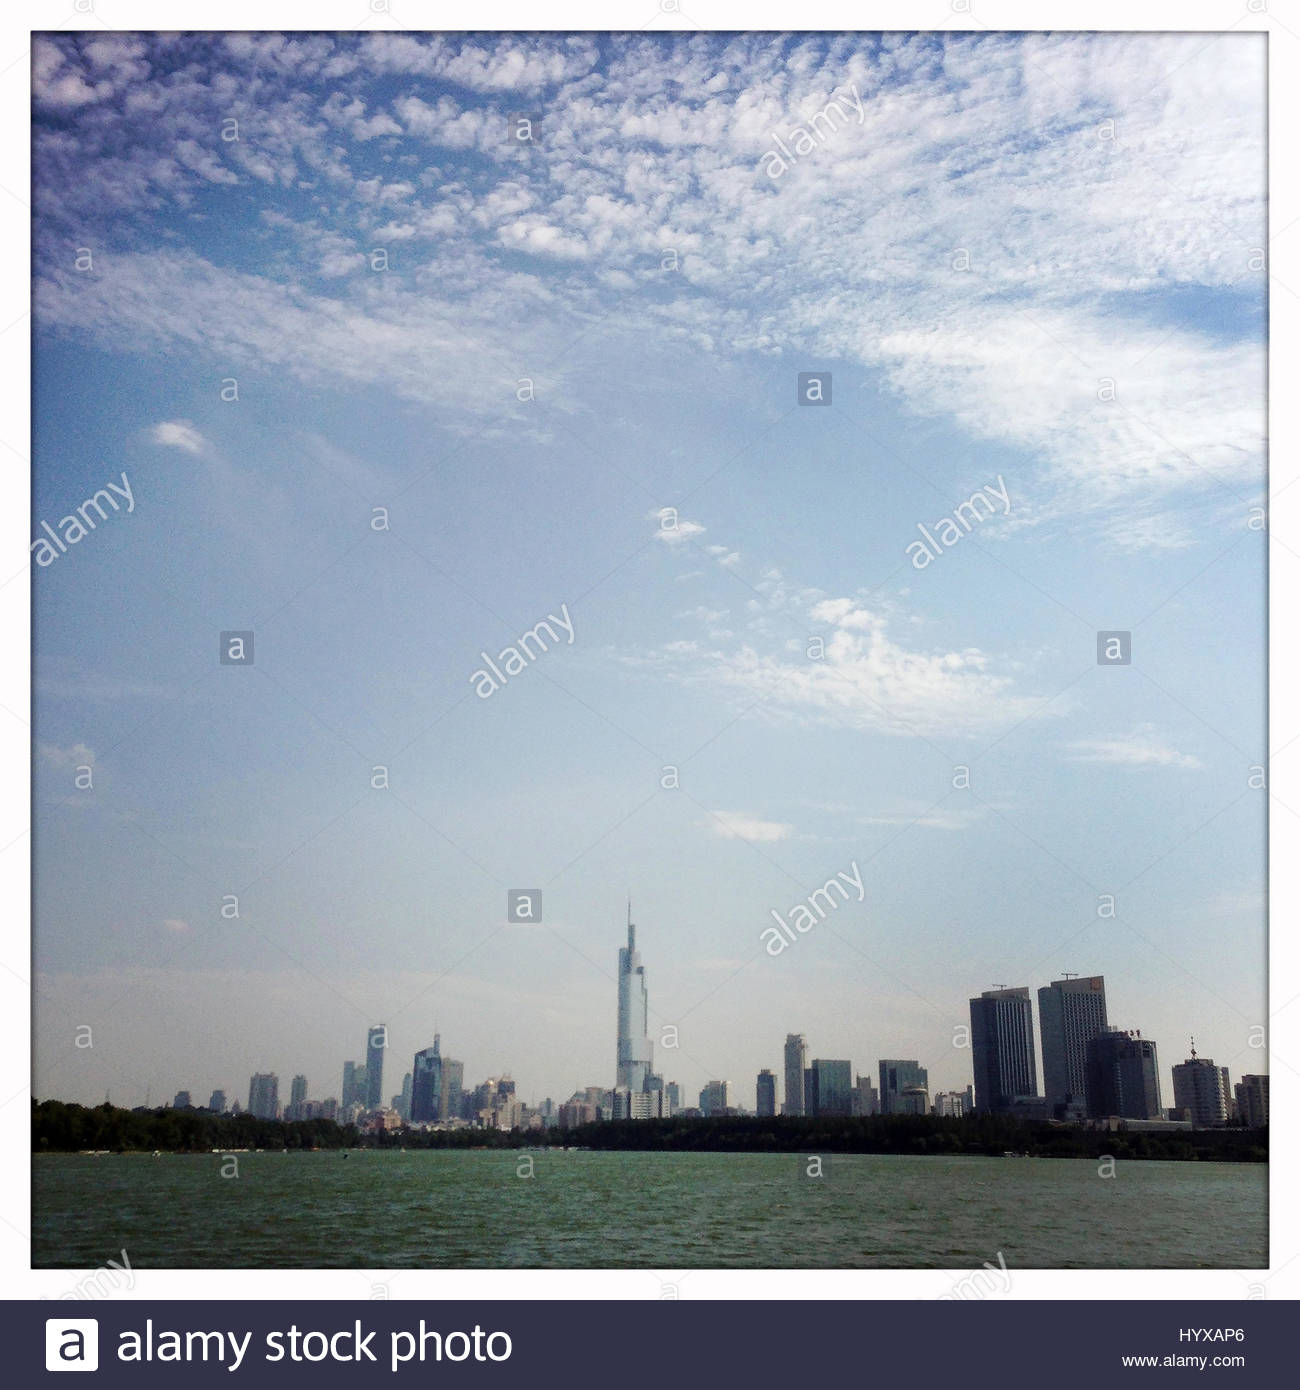 A view of the city of Nanjing, in central China. - Stock Image